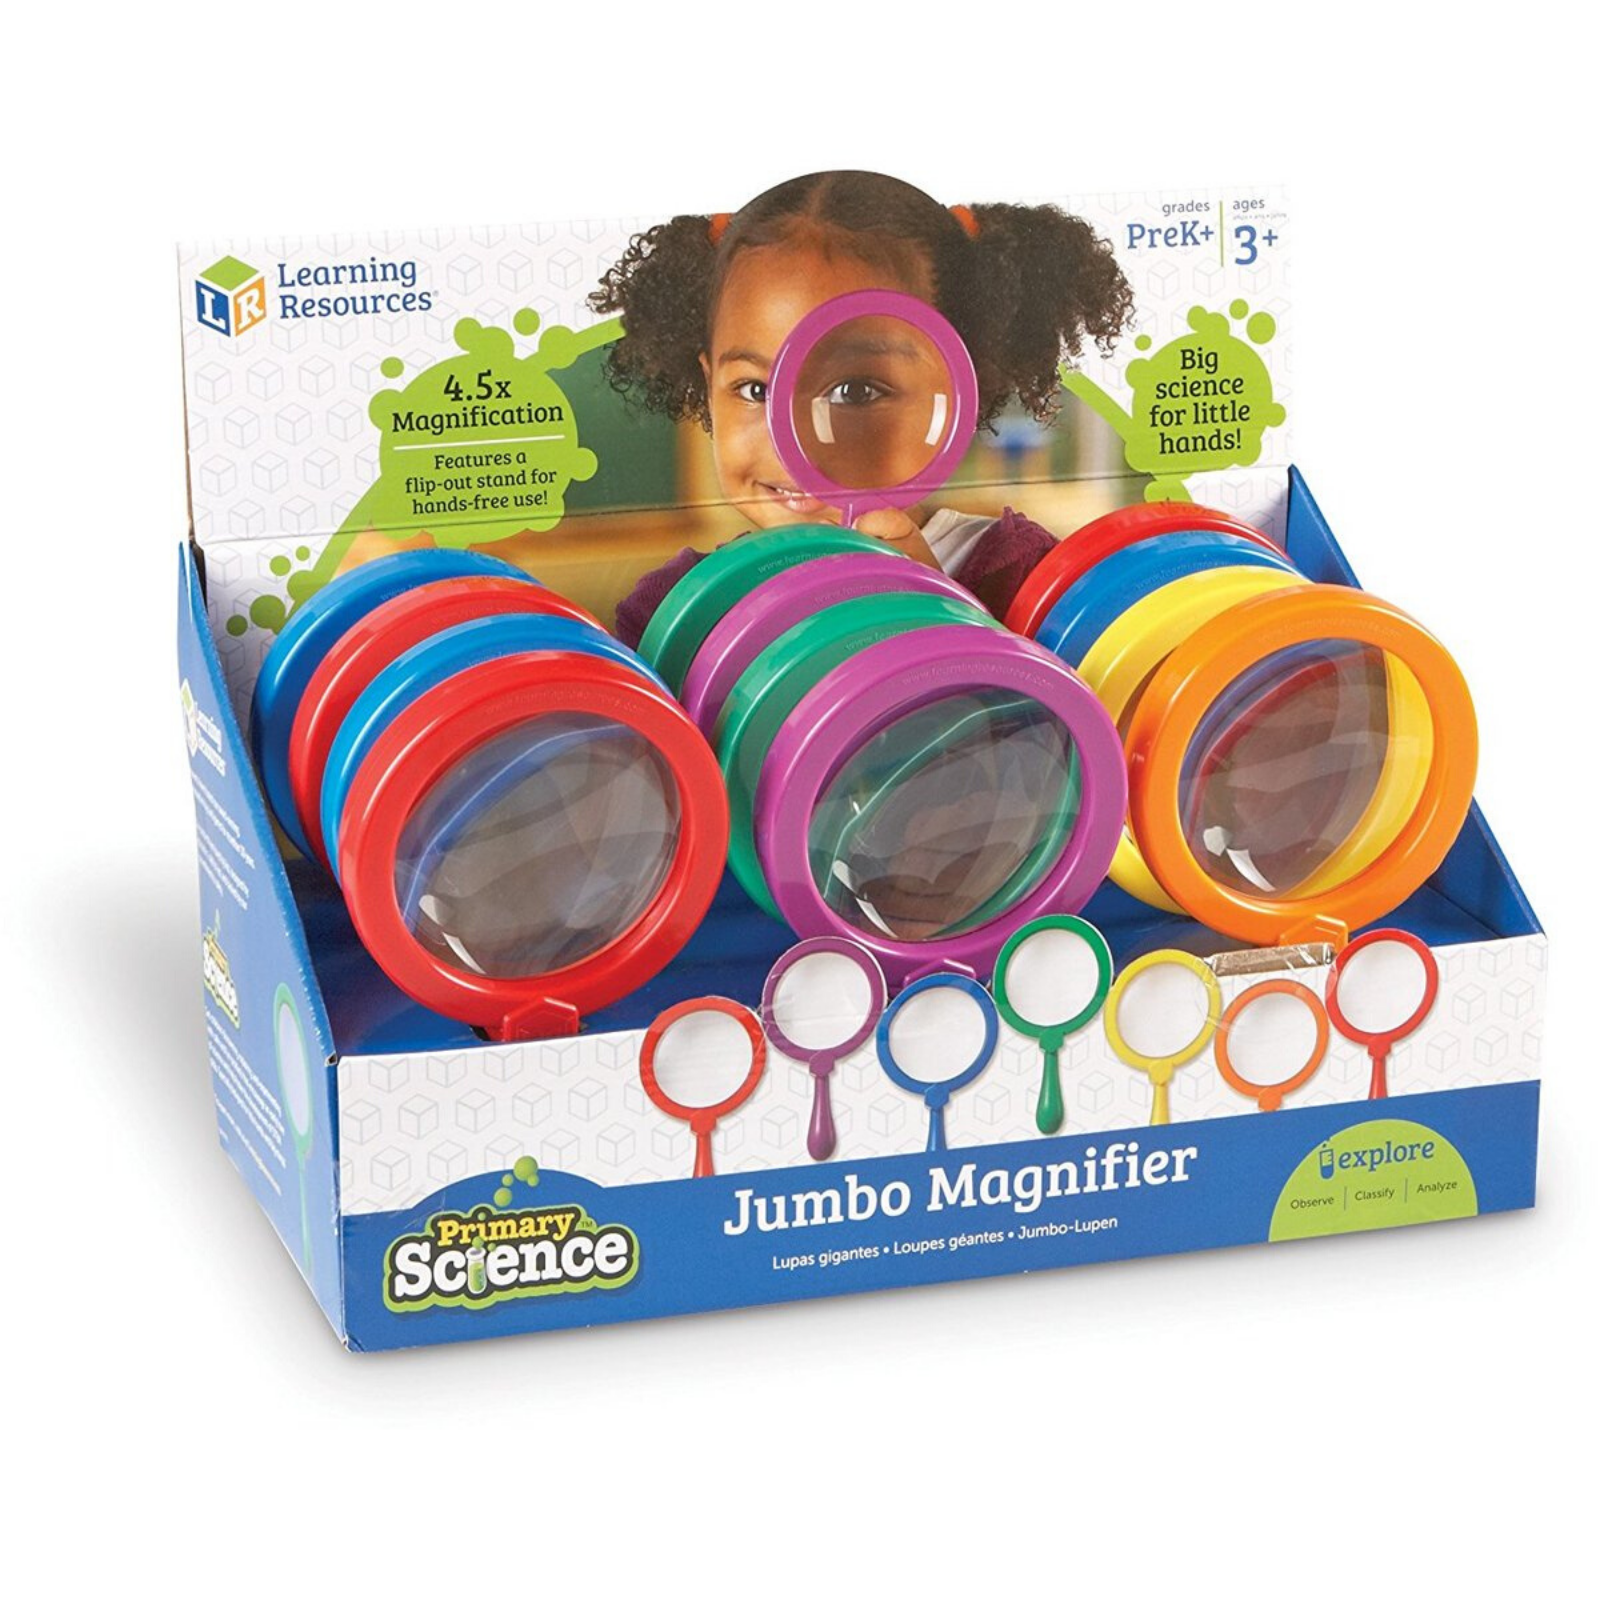 Lupa Jumbo Magnifier - Learning Resources [1]